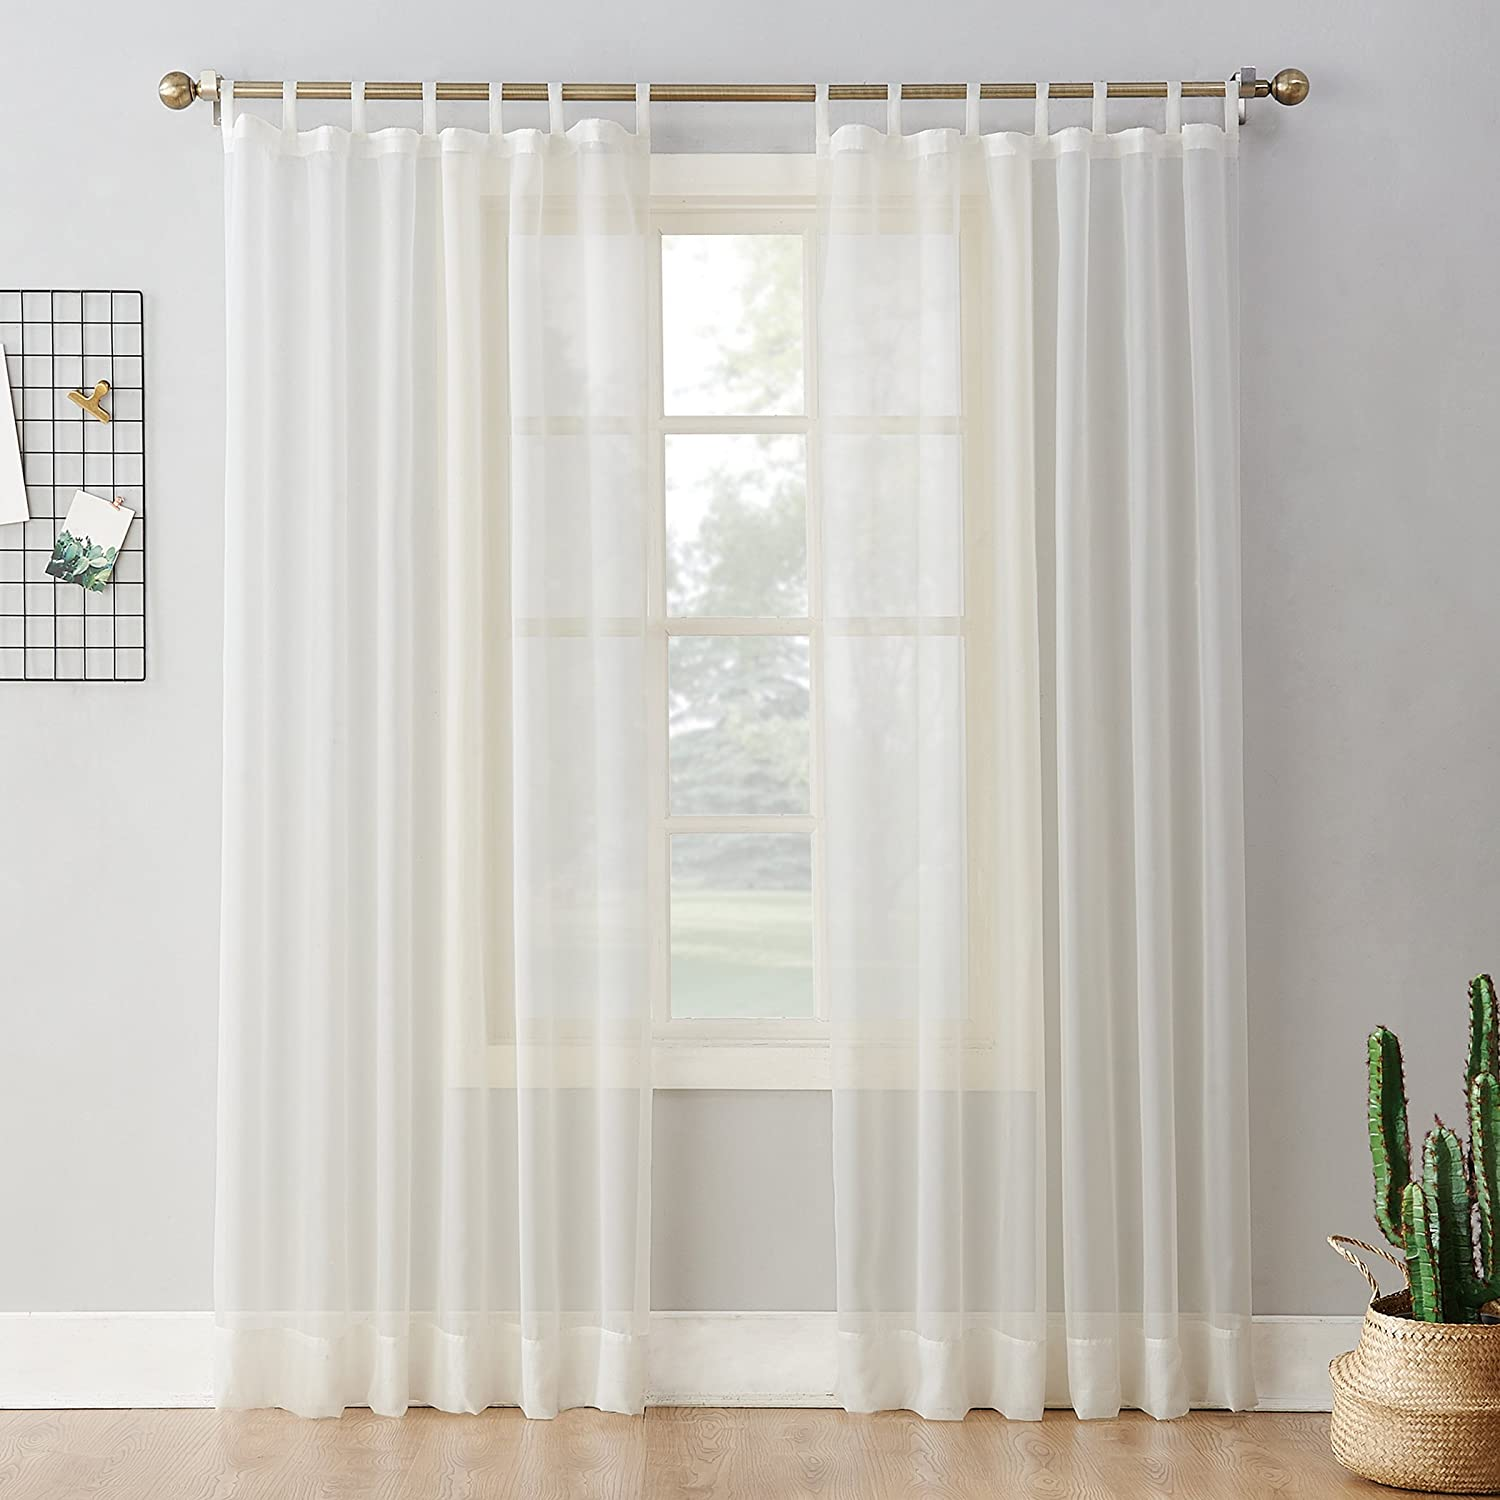 No 918 52453 Emily Sheer Voile Tab Top Curtain Panel 59 X 84 Eggshell Home Kitchen